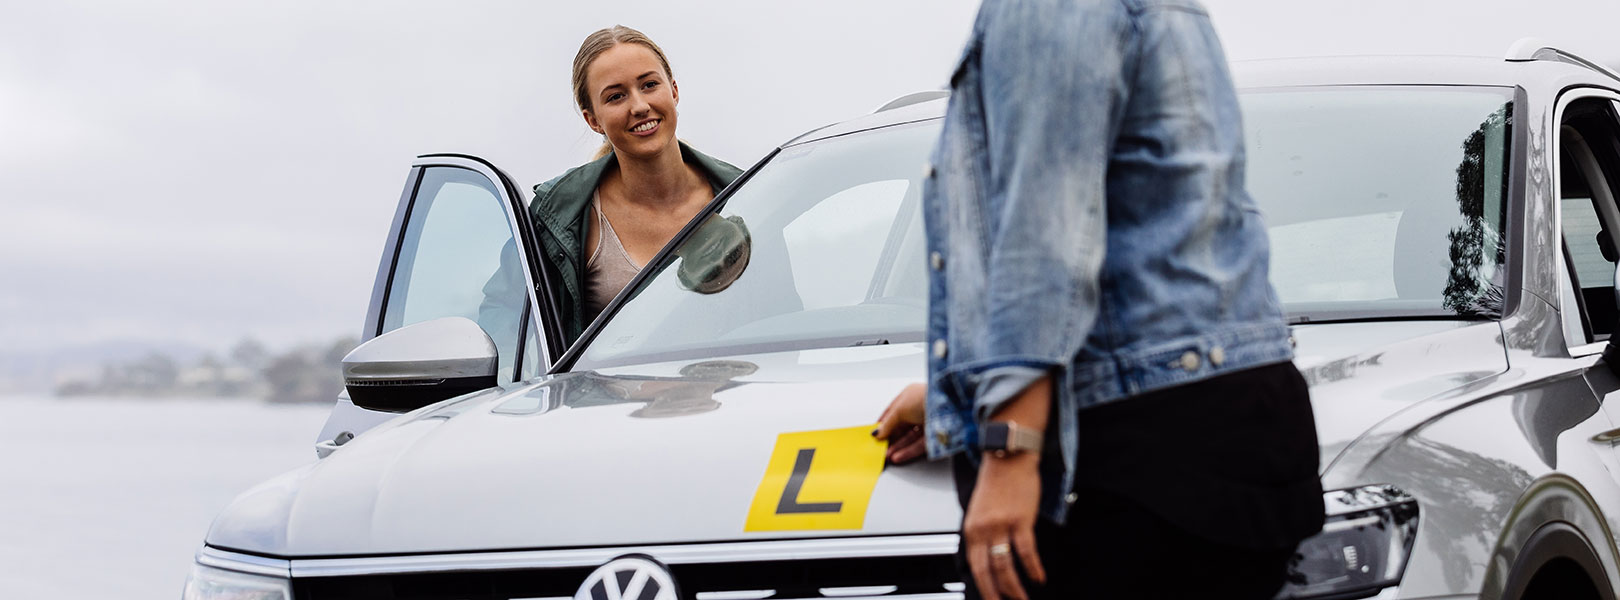 Young lady getting into the driver's seat of a car with L Plates displayed